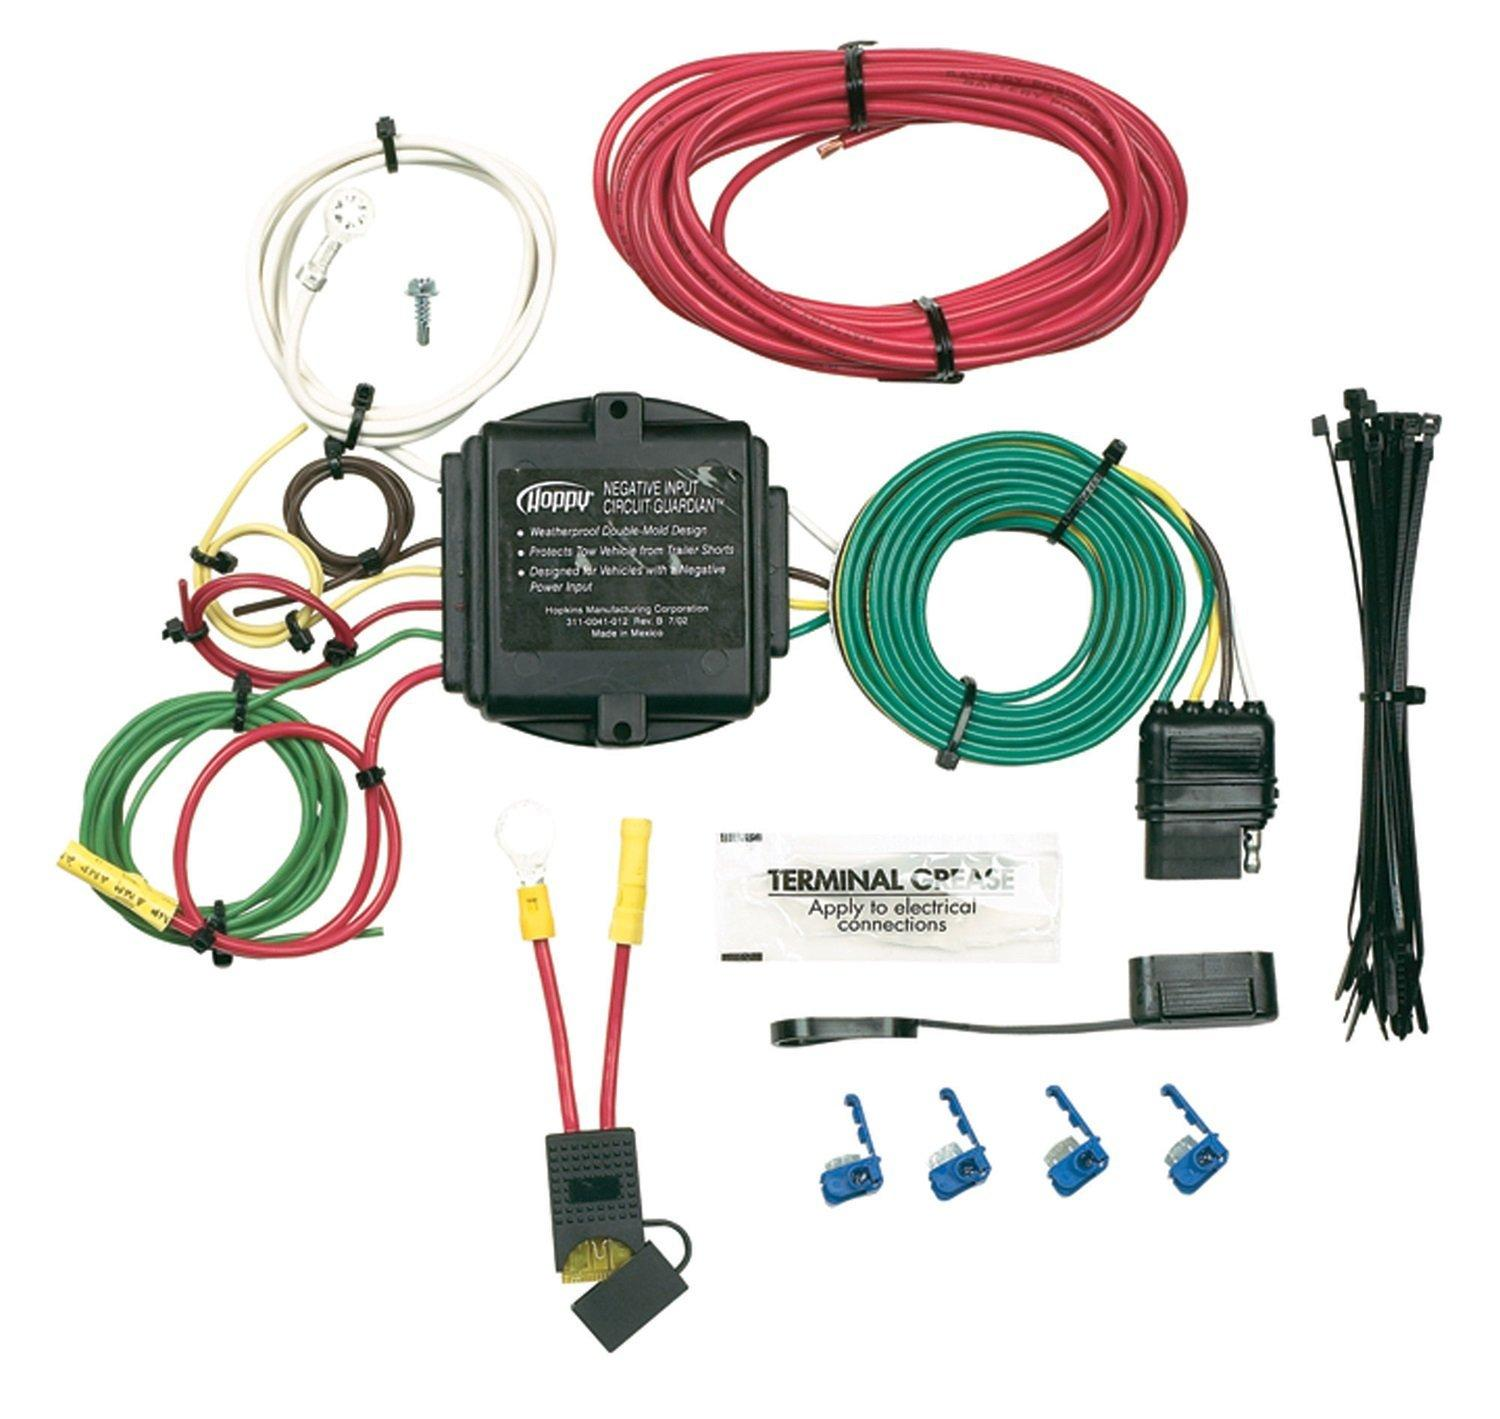 46155 Hopkins Trailer Wiring Converter House Diagram Symbols Brake Controller Amazon Com Taillight Universal Kit Automotive Rh Kits